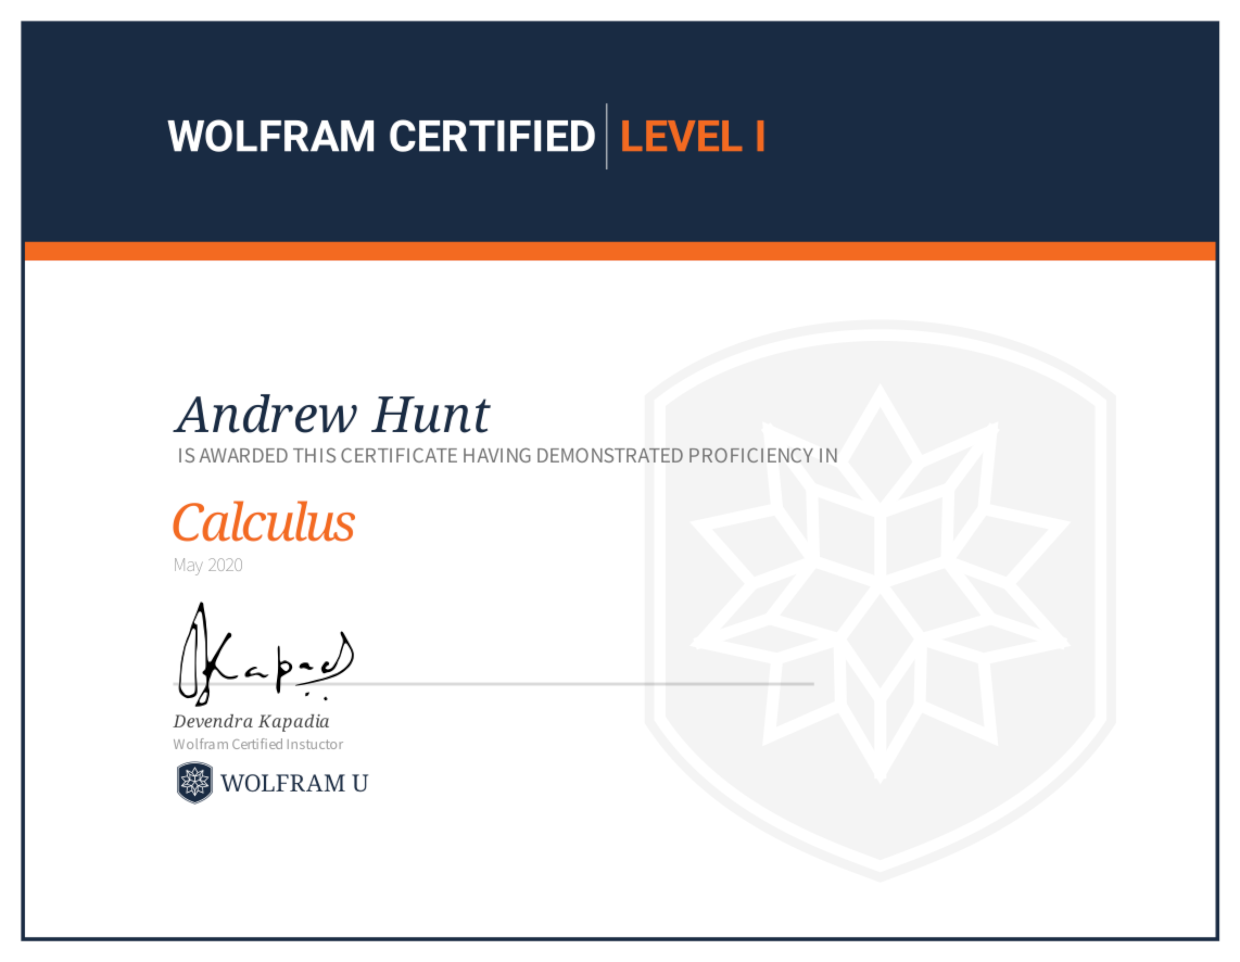 Wolfram Level 1 Certification